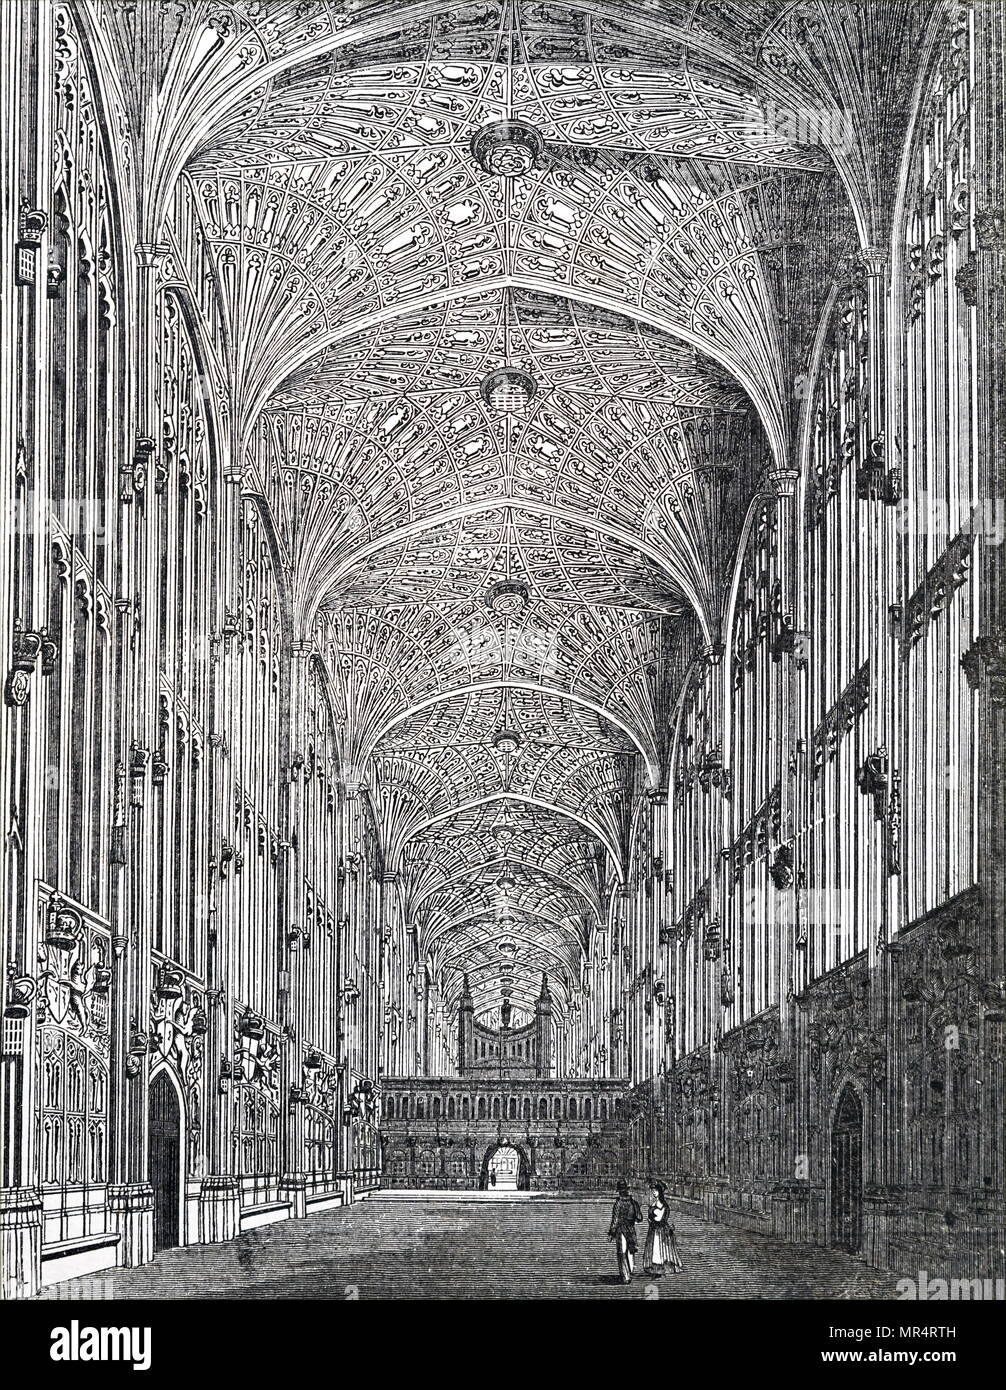 Engraving depicting the interior of King's College Chapel, Cambridge, showing the fan vaulted celling. Dated 19th century Stock Photo